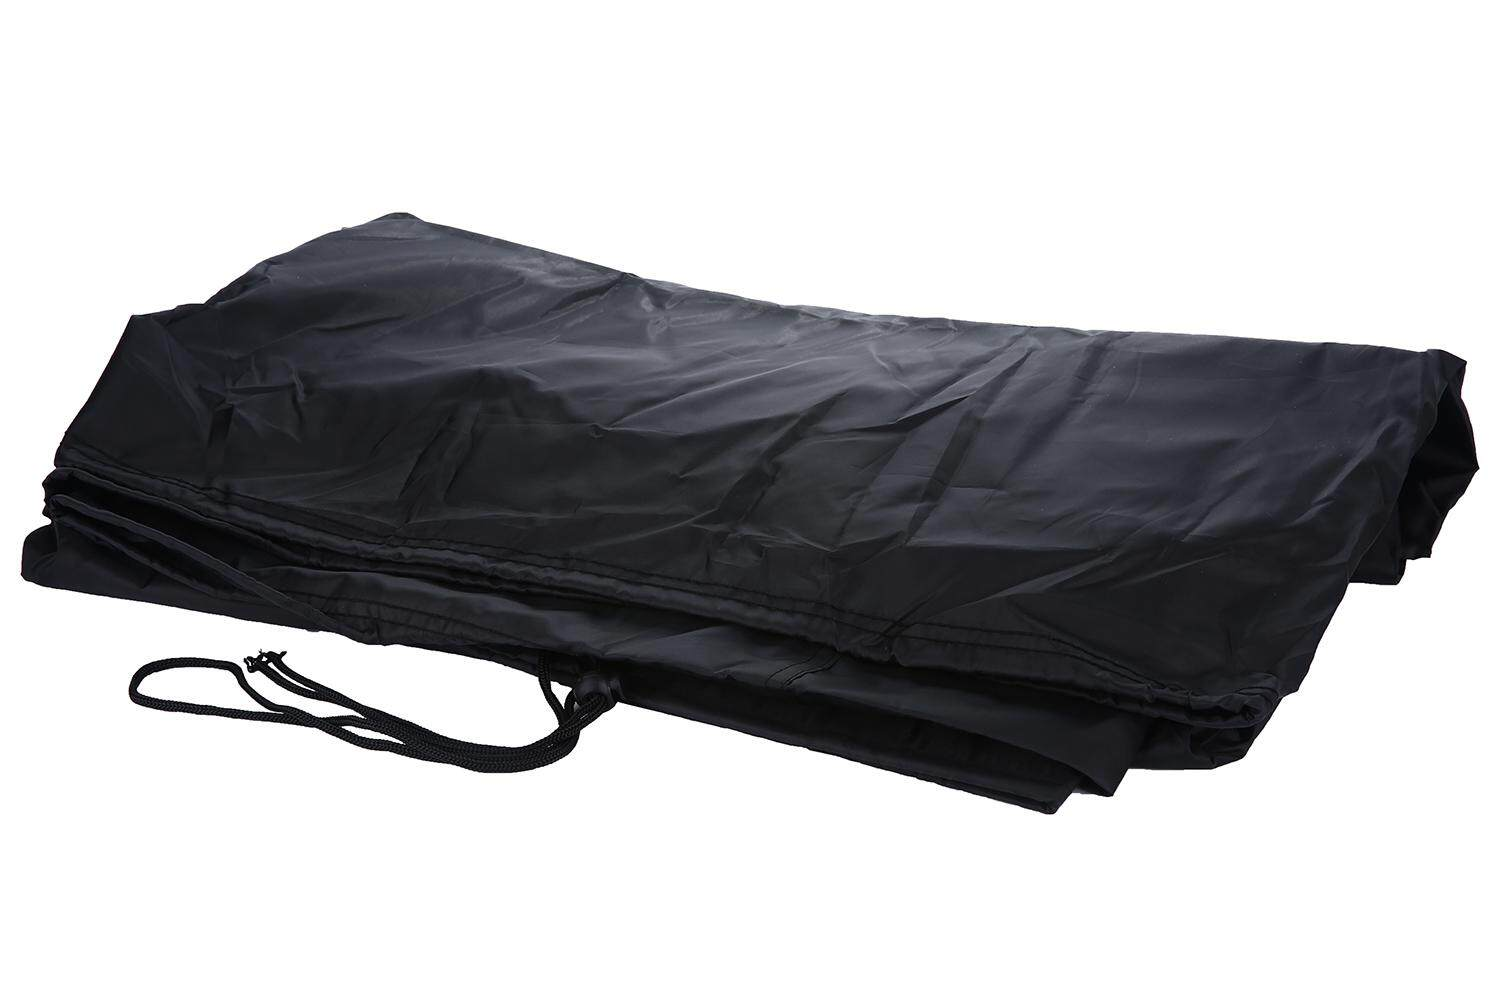 Kobwa Barbeque Gas Grill Gover Heavy Duty Premium Grill Cover 57 Inch Waterproof For Weber, Holland, Jenn Air, Brinkmann And Char Broil (Black) - intl